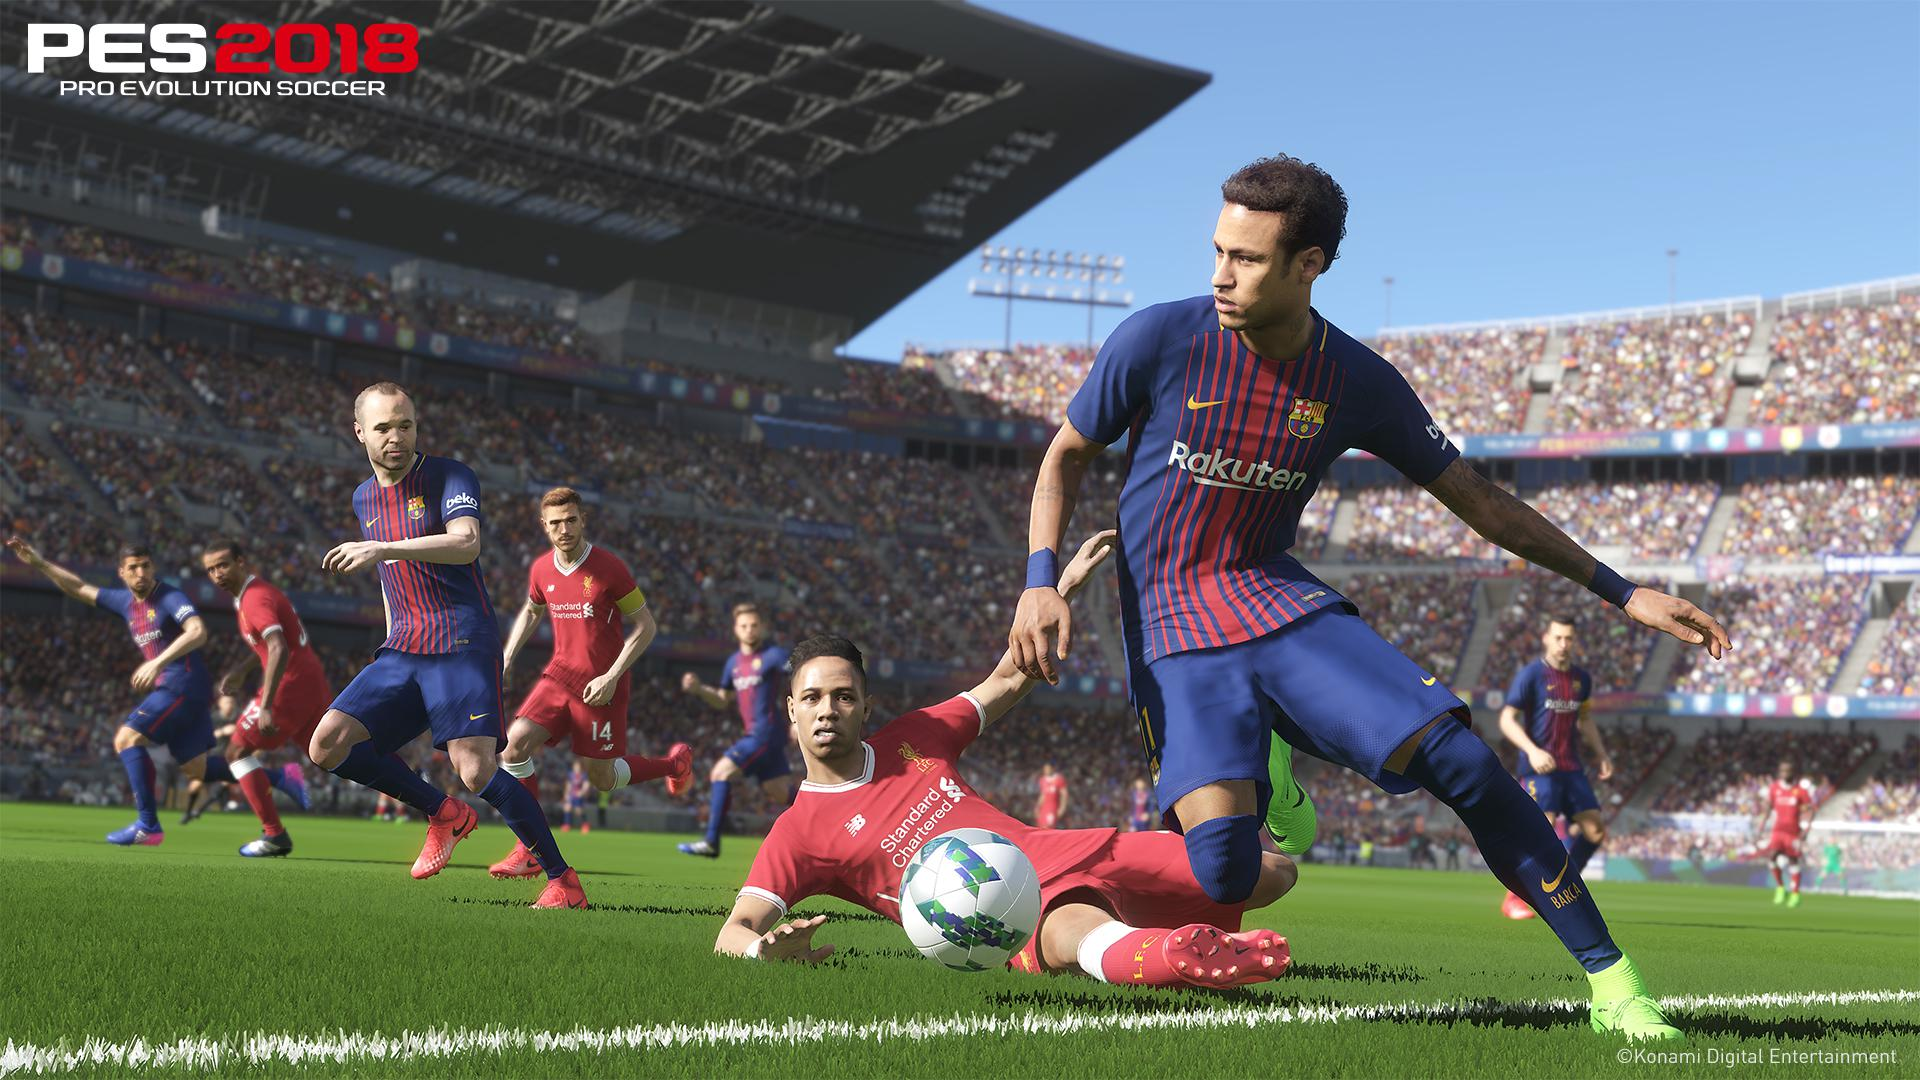 Neymar still plays for Barca in PES 2018 but a live update will fix that from the off